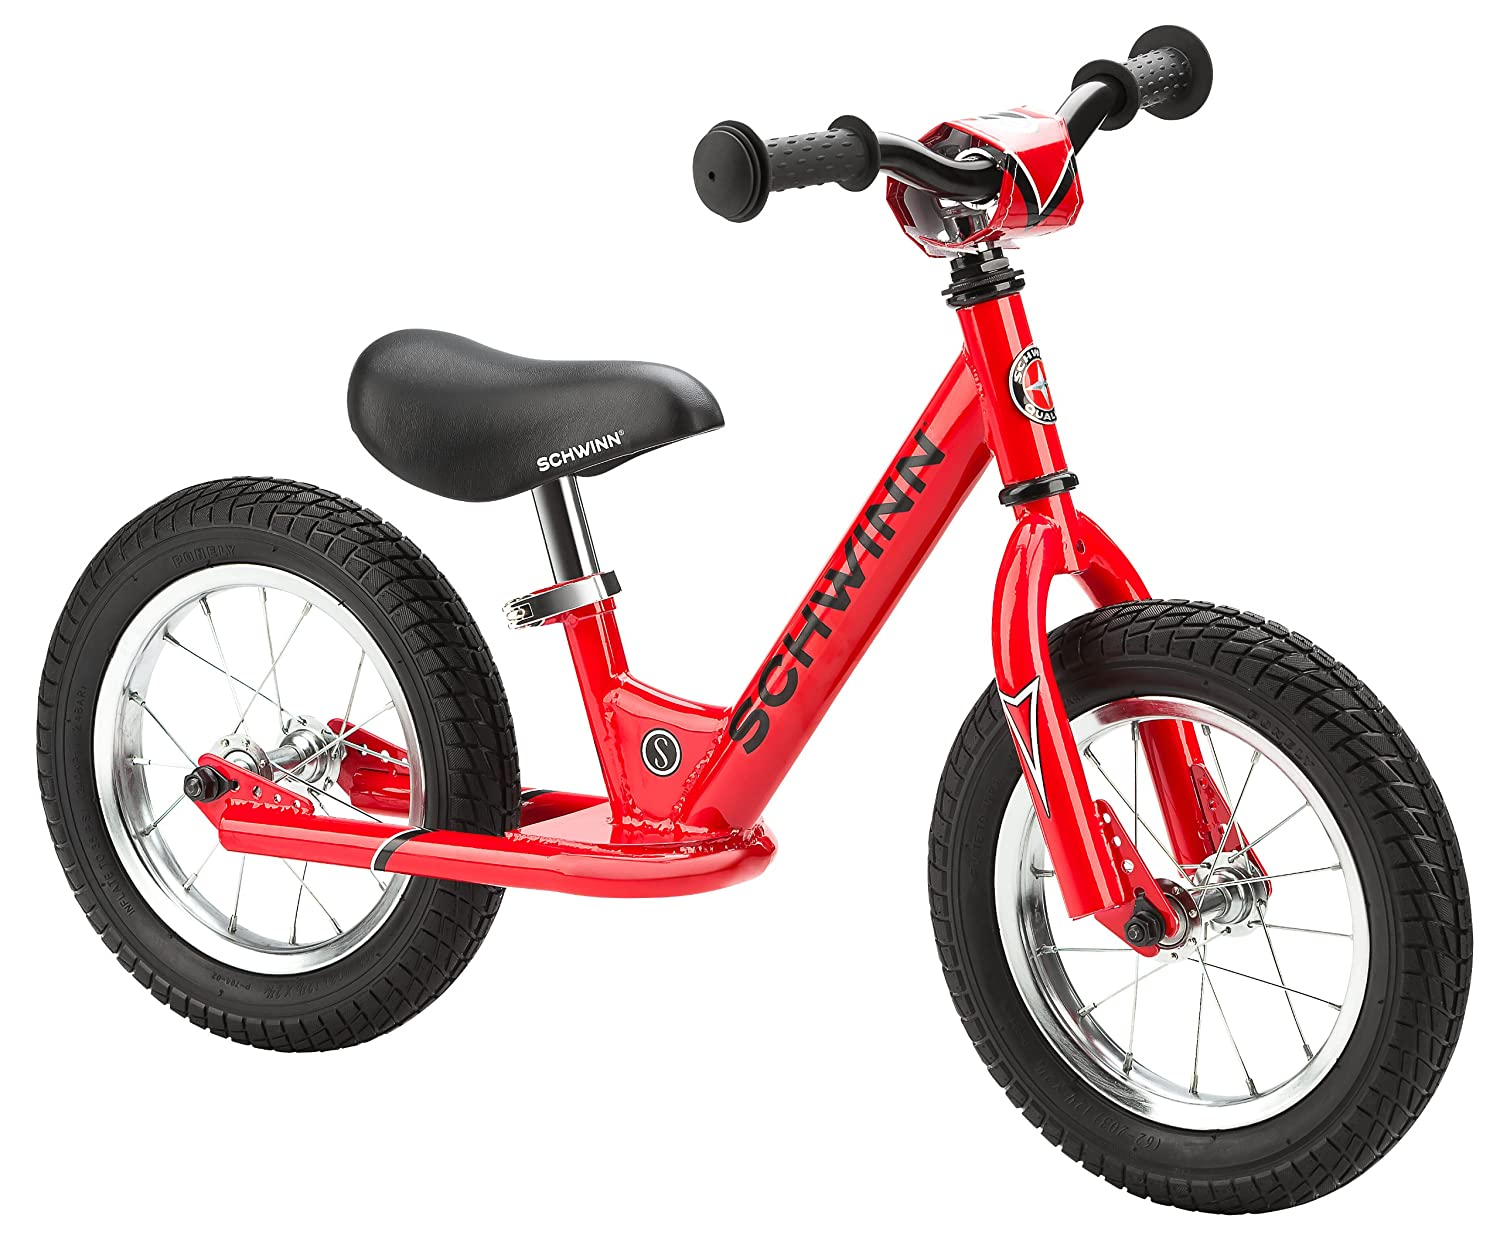 Bikes For Toddlers With No Pedals Amazon com Schwinn Kid s